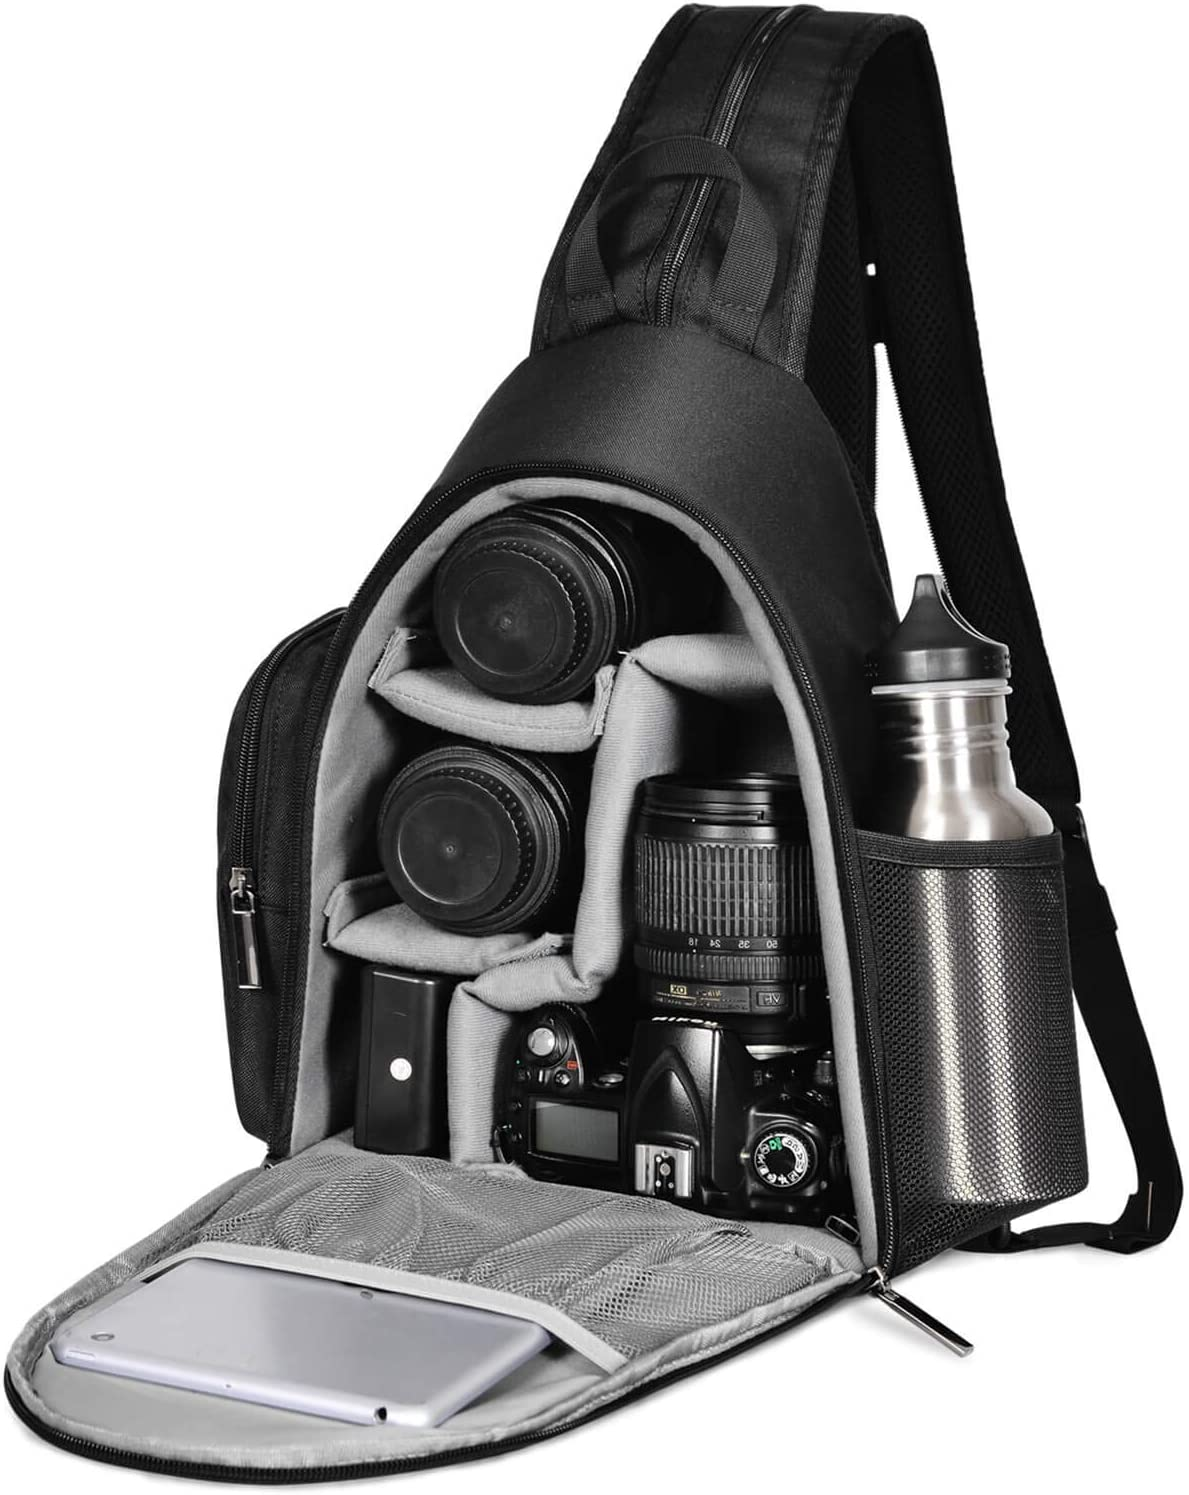 CADEN Camera Sling Bag, SLR DSLR Camera Backpack with Tripod Holder for Mirrorless Cameras and Lenses(Nikon Canon Sony etc)